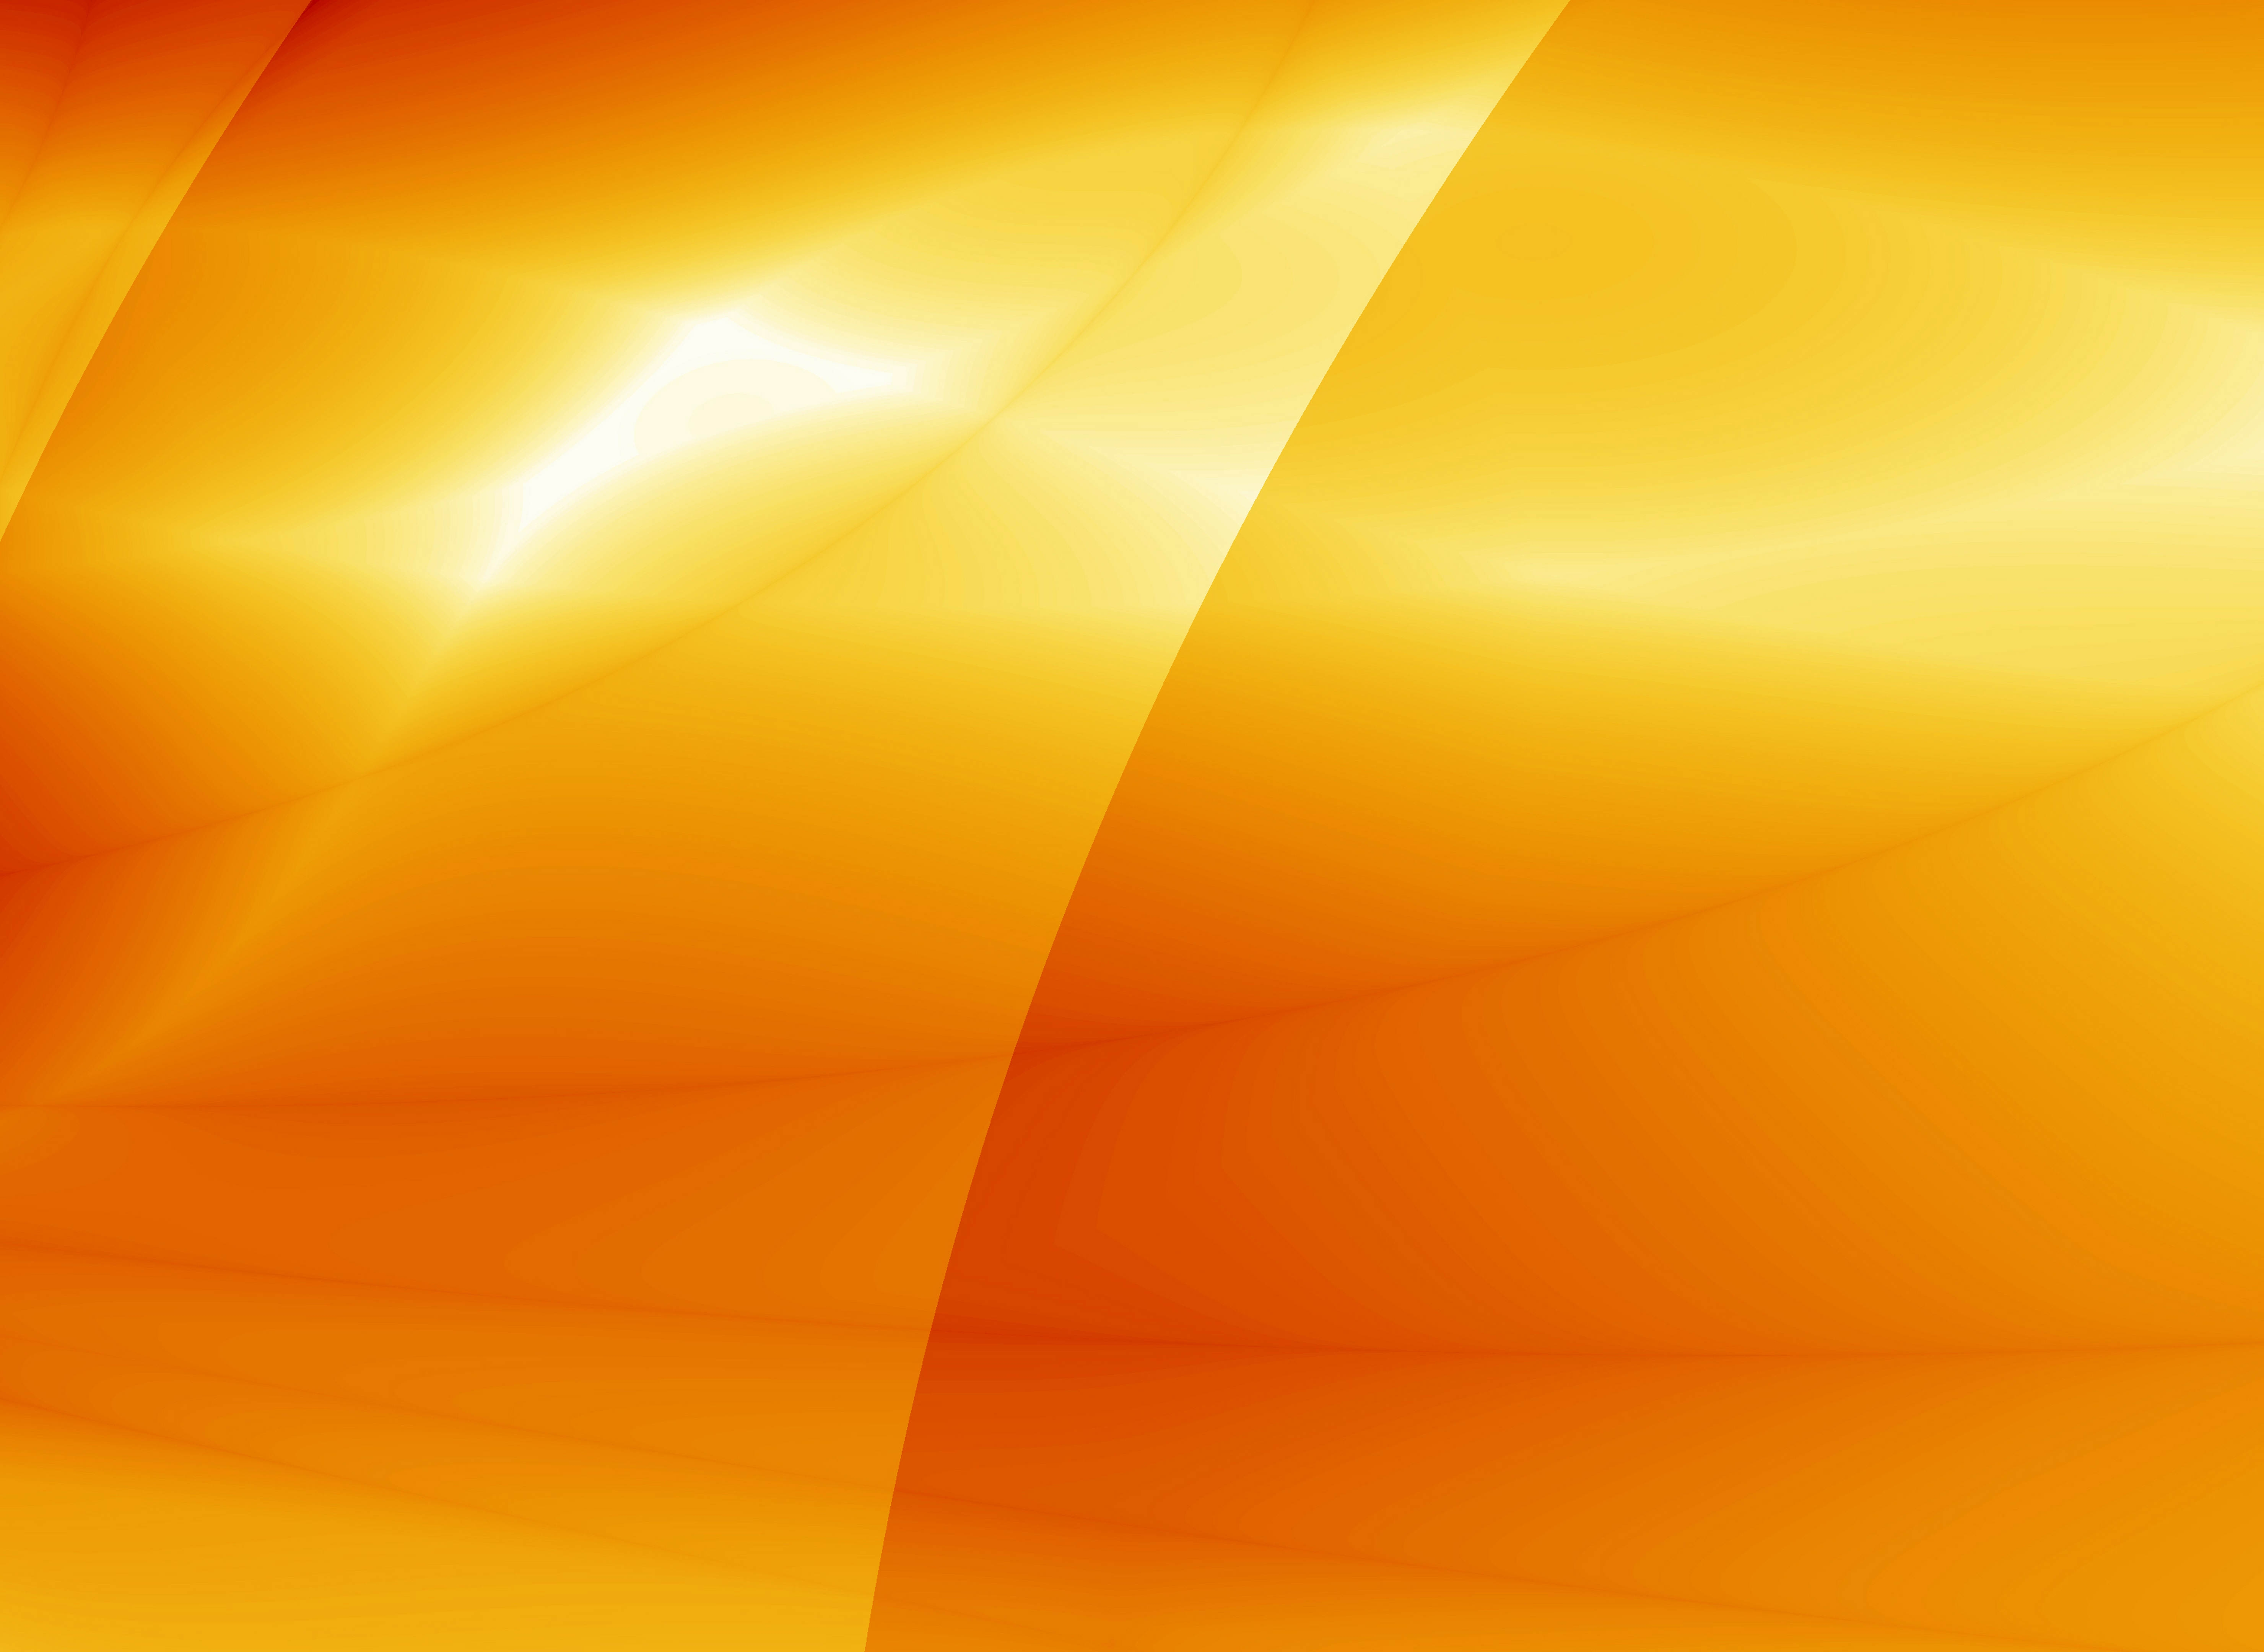 147174 download wallpaper Abstract, Background, Lines, Bright, Shine, Brilliance screensavers and pictures for free